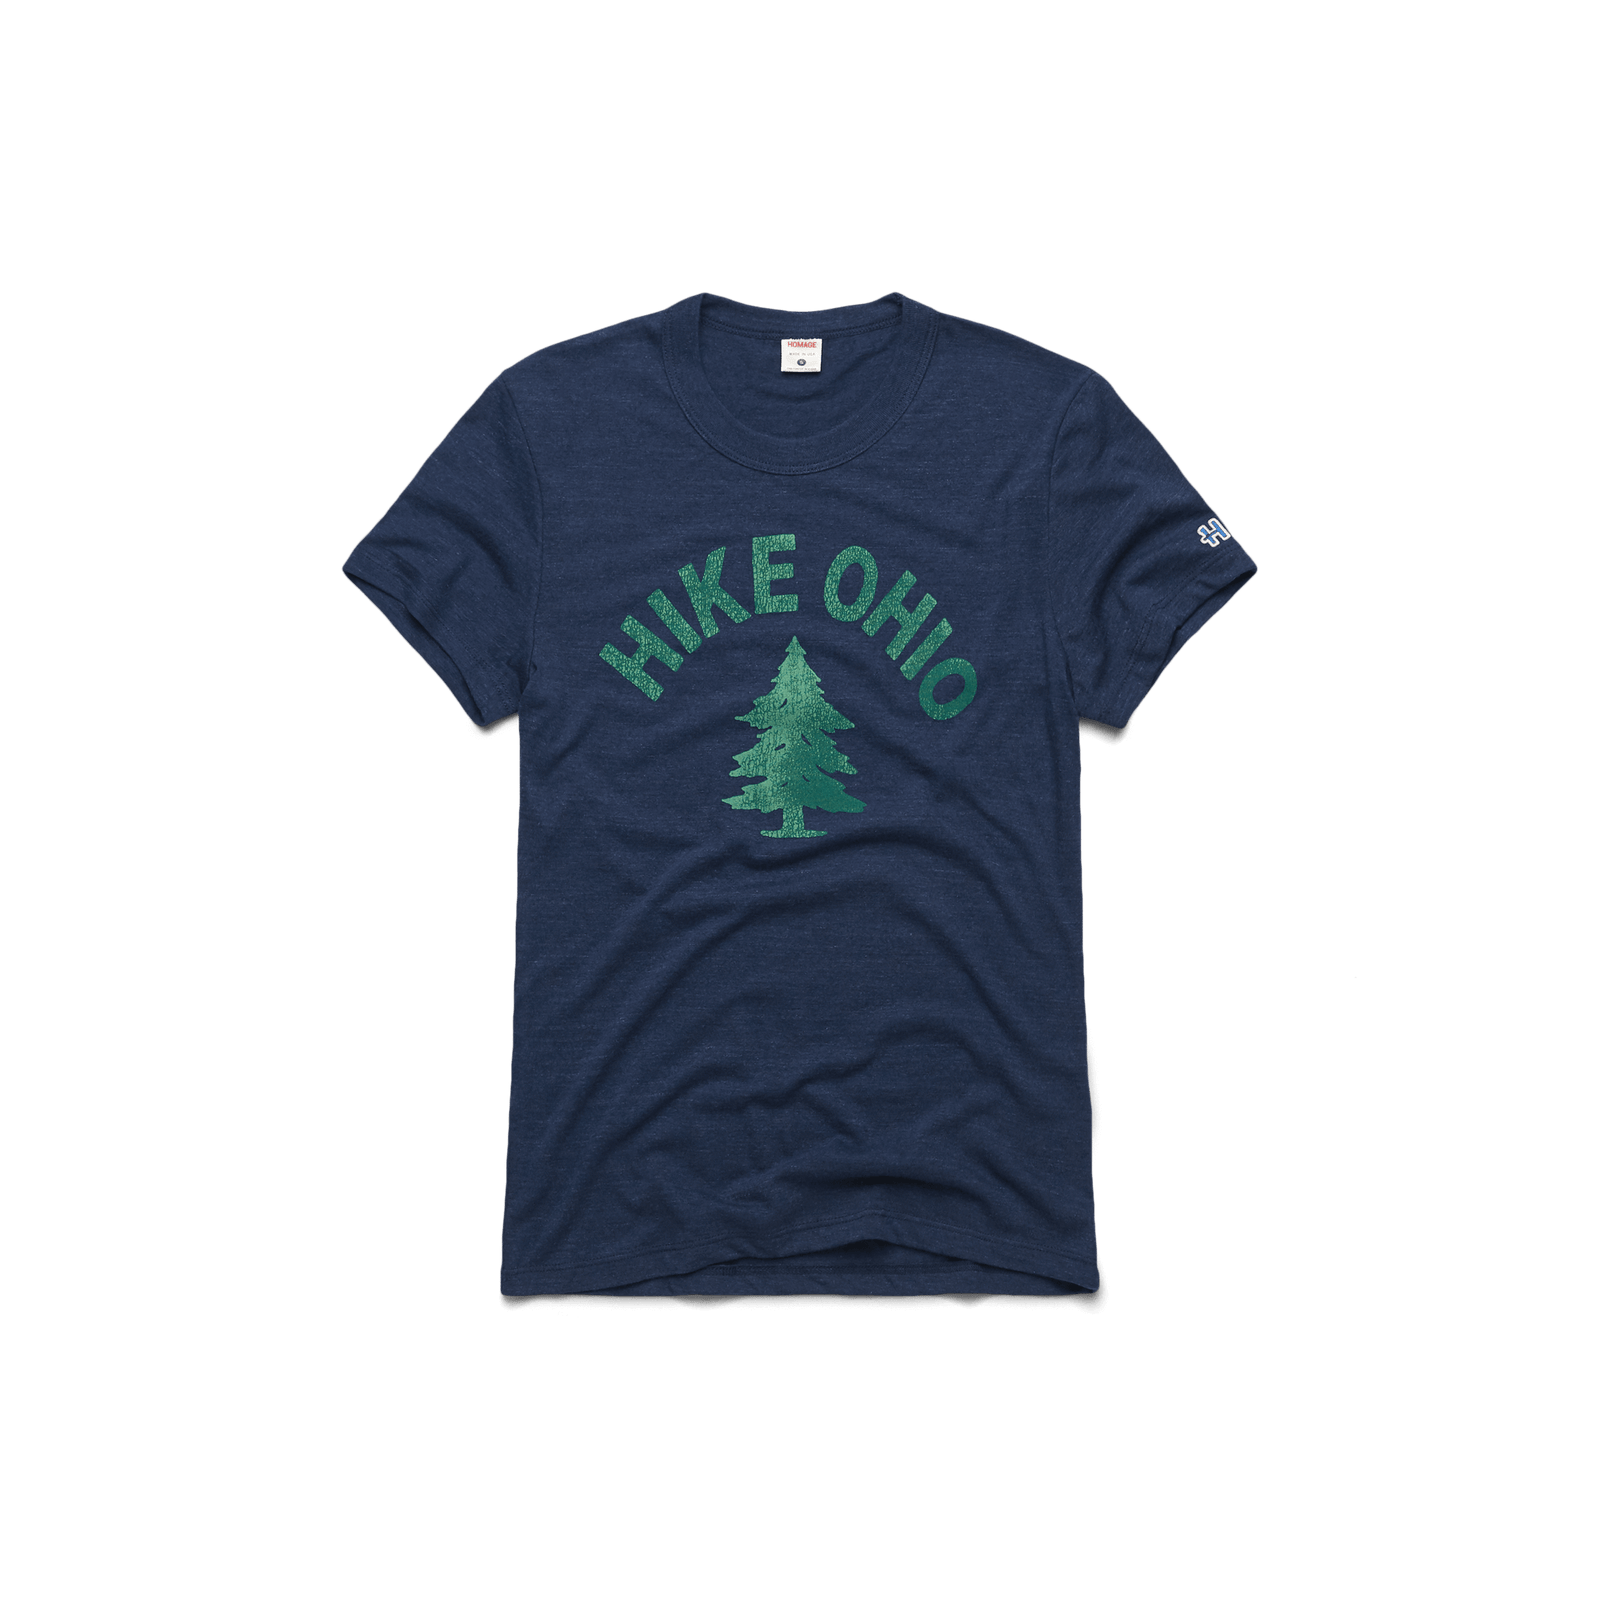 Women's Hike Ohio Vintage Tee